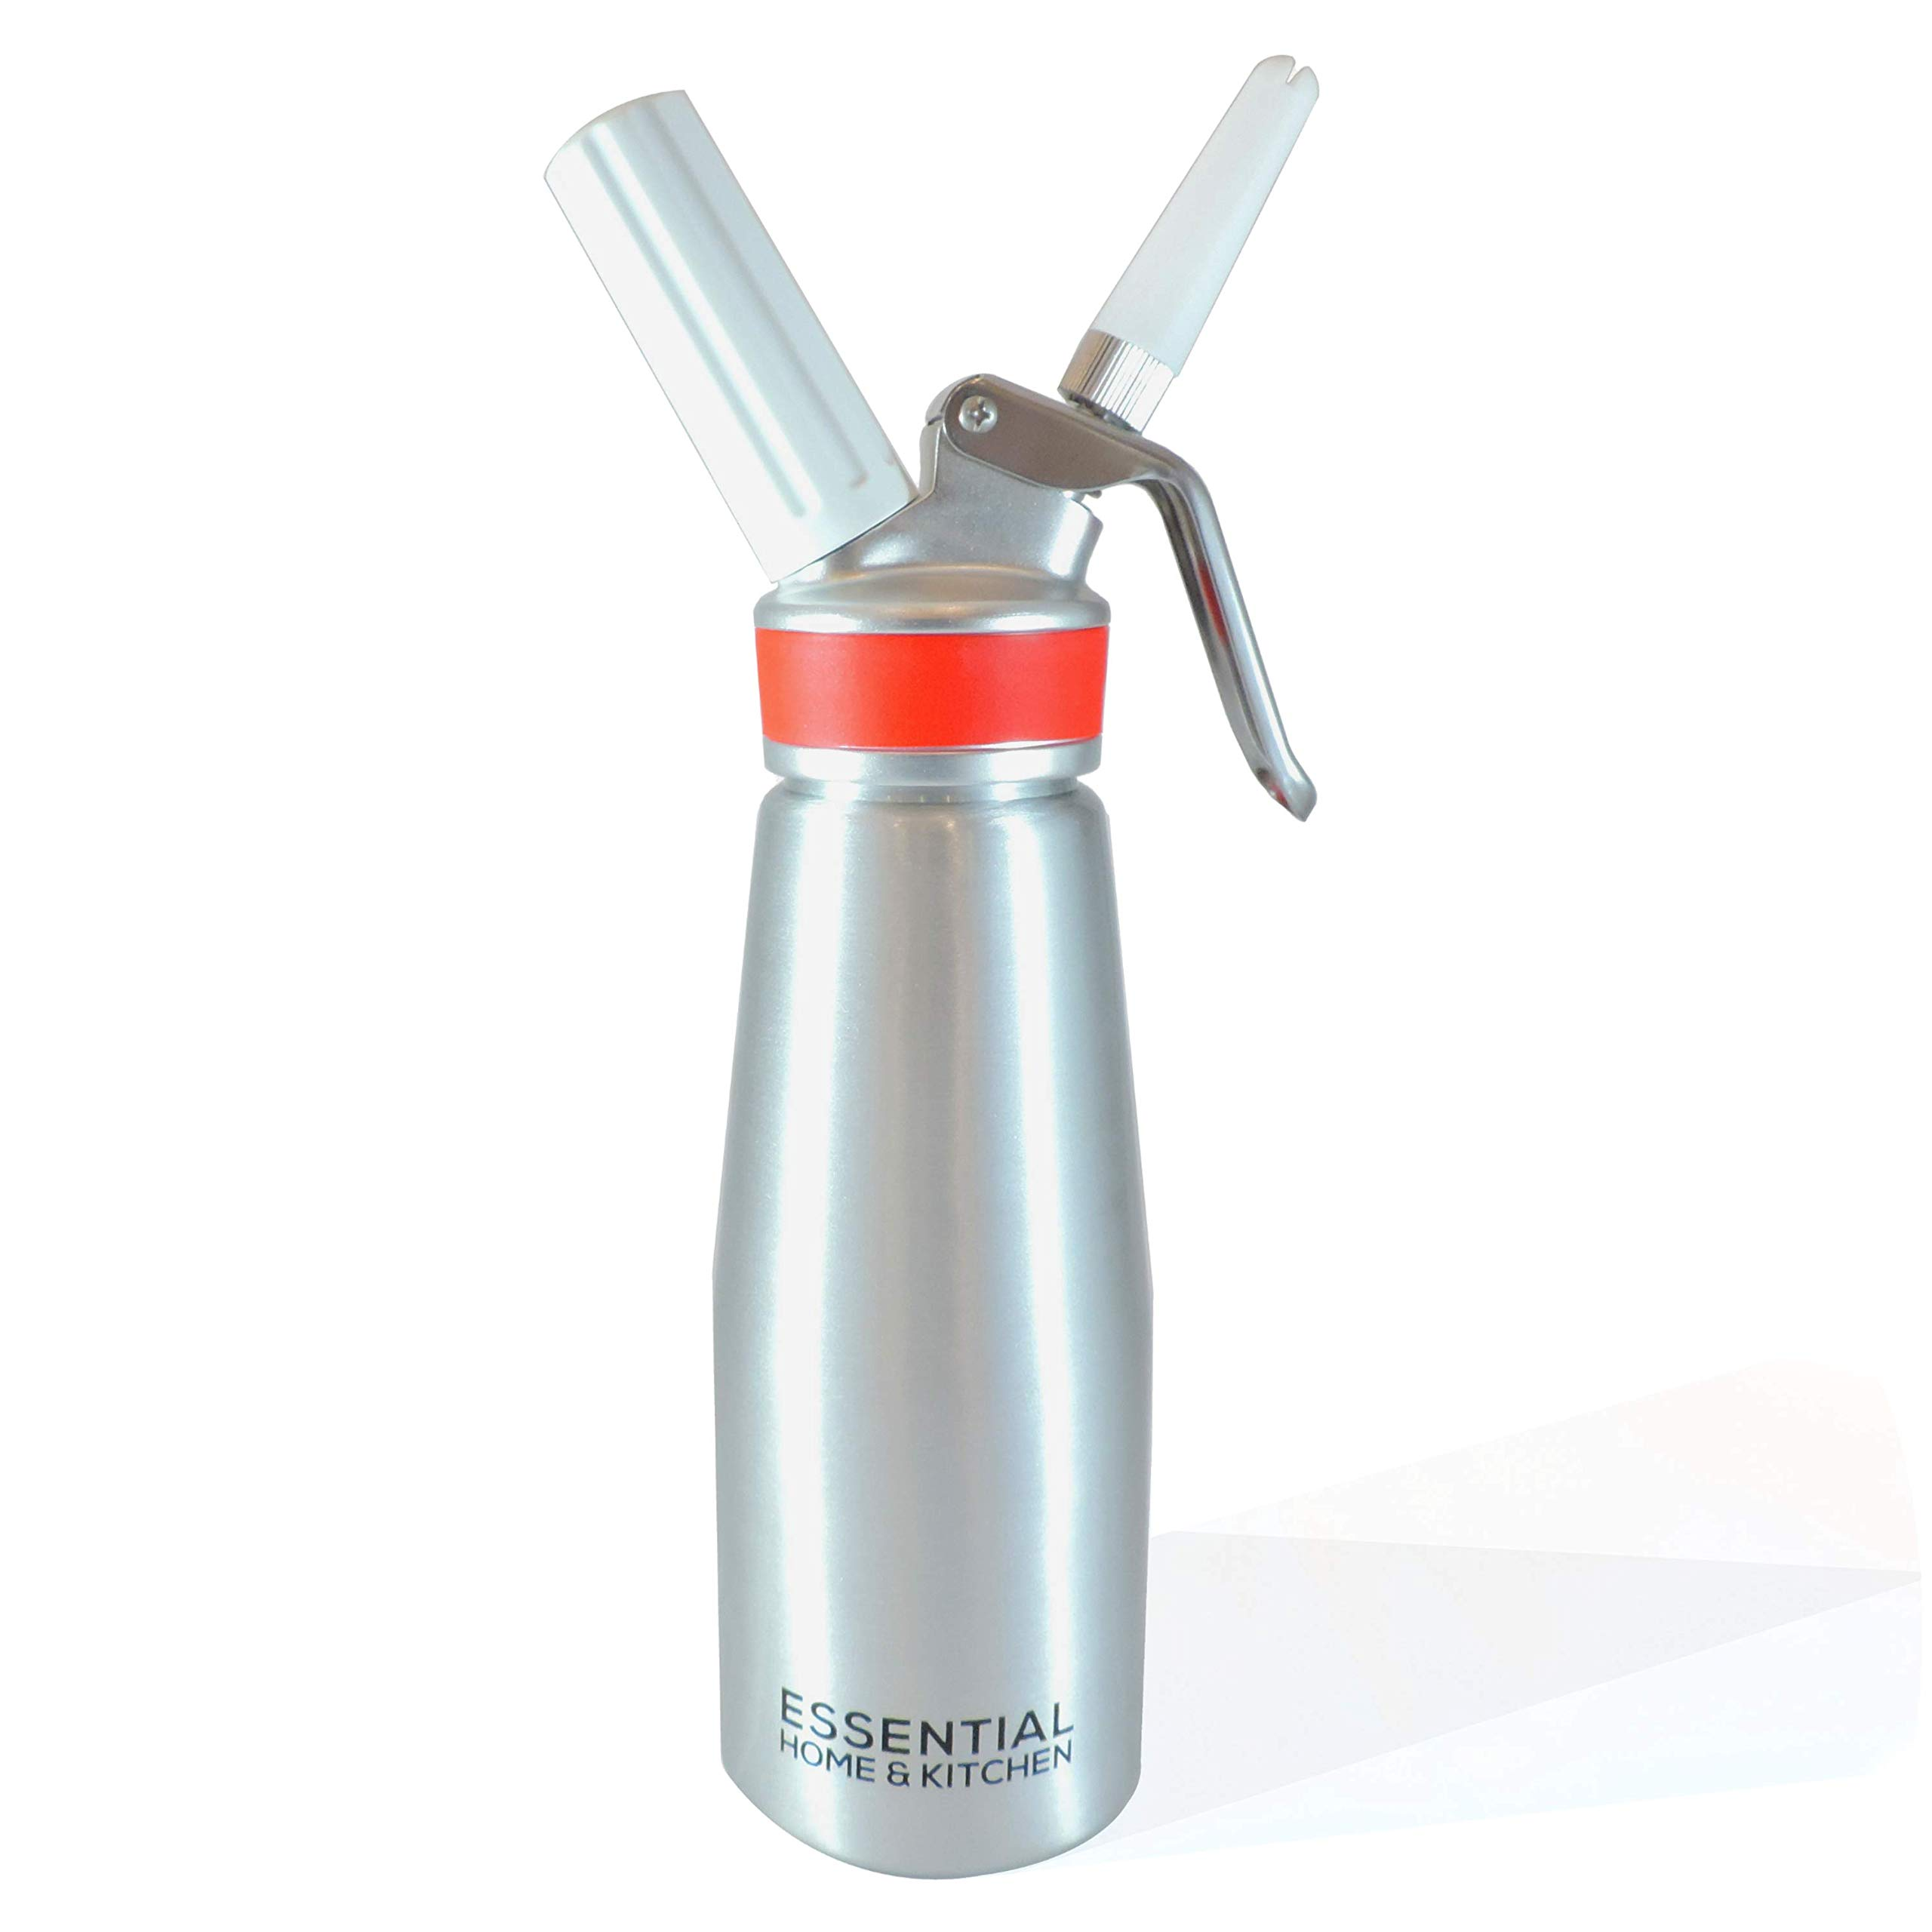 Whipped Cream Maker Aluminum Whipping Siphon Canister Whip Dispenser Whipper uses ISI Nitrous Co2 Chargers Cartridges with Holder and Stainless Steel Brush for Professional Kitchen Gourmet Coffee